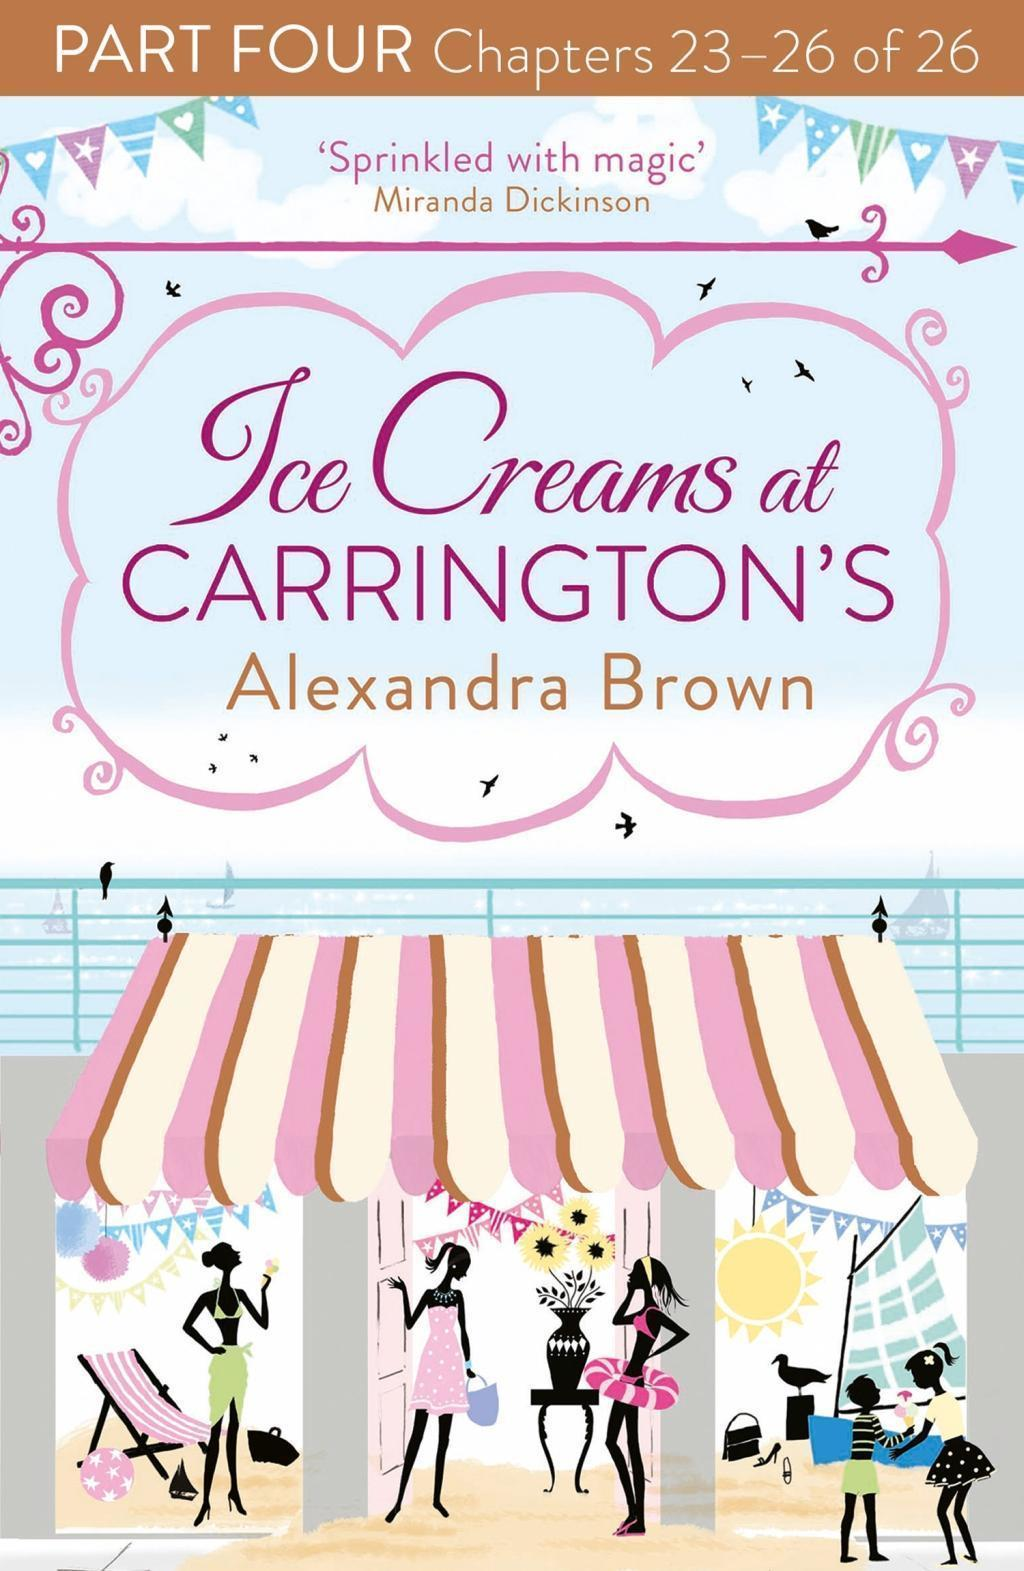 Ice Creams at Carrington's: Part Four, Chapters 23-26 of 26